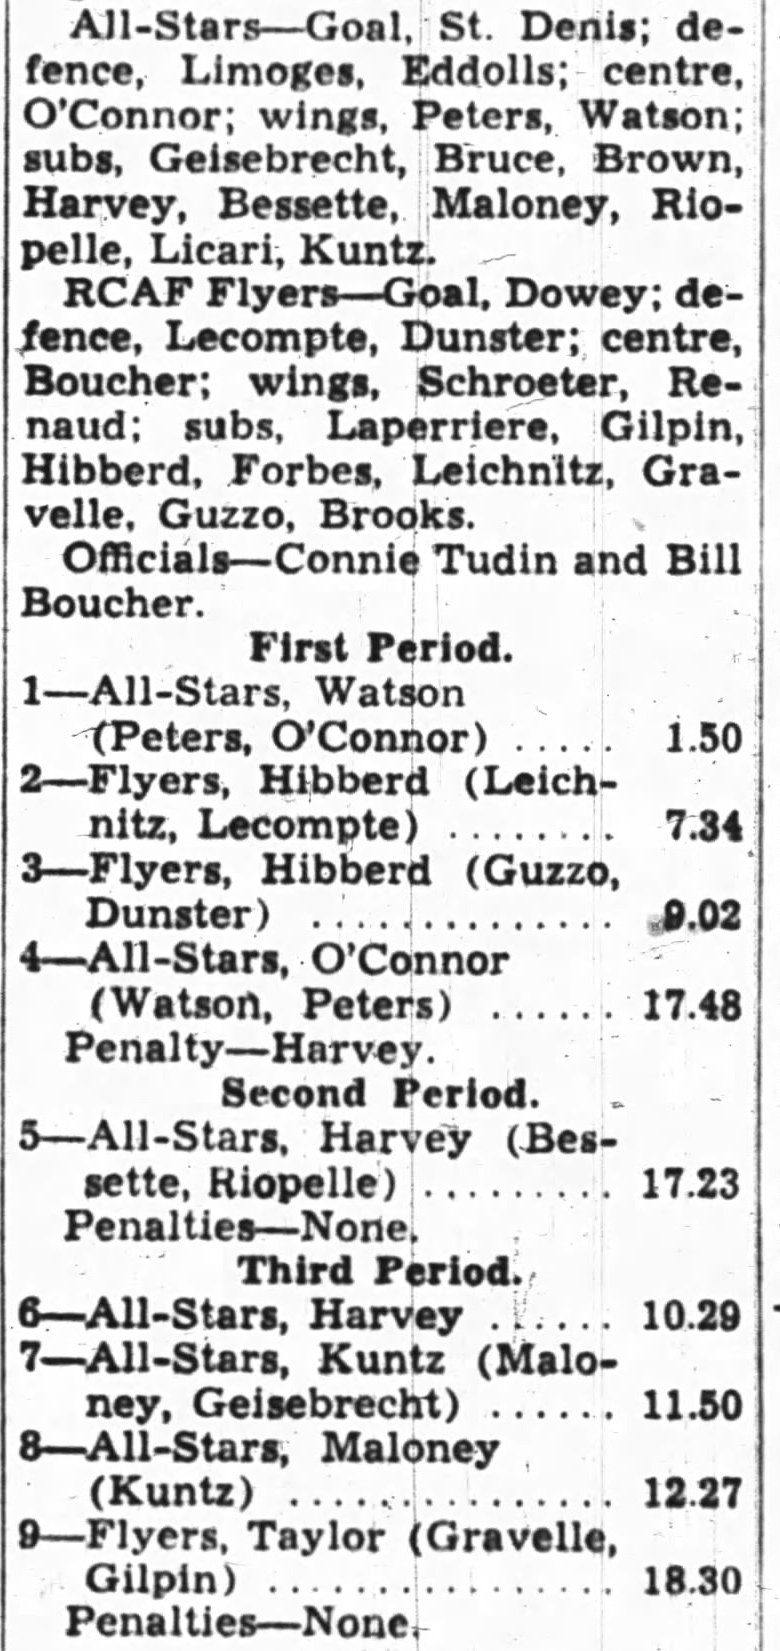 Photo: Lineup and Scoring for  RCAF Flyers vs NHL QSHL All Stars on April 10  1948 Charity hockey  game